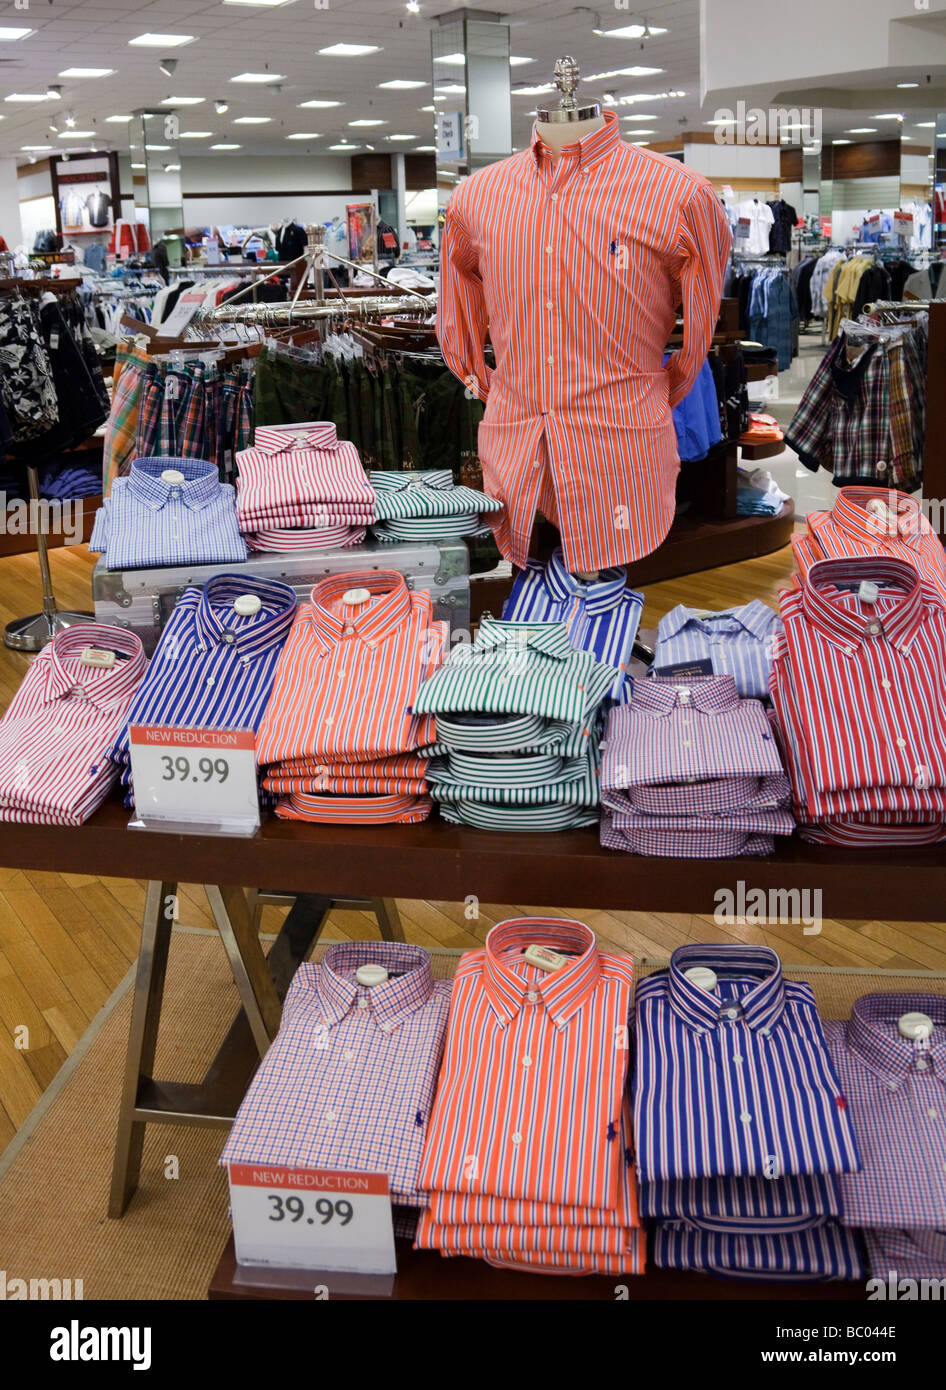 display of Polo shirts, Macy's department store, Montgomerville mall, Pennsylvania, USA - Stock Image